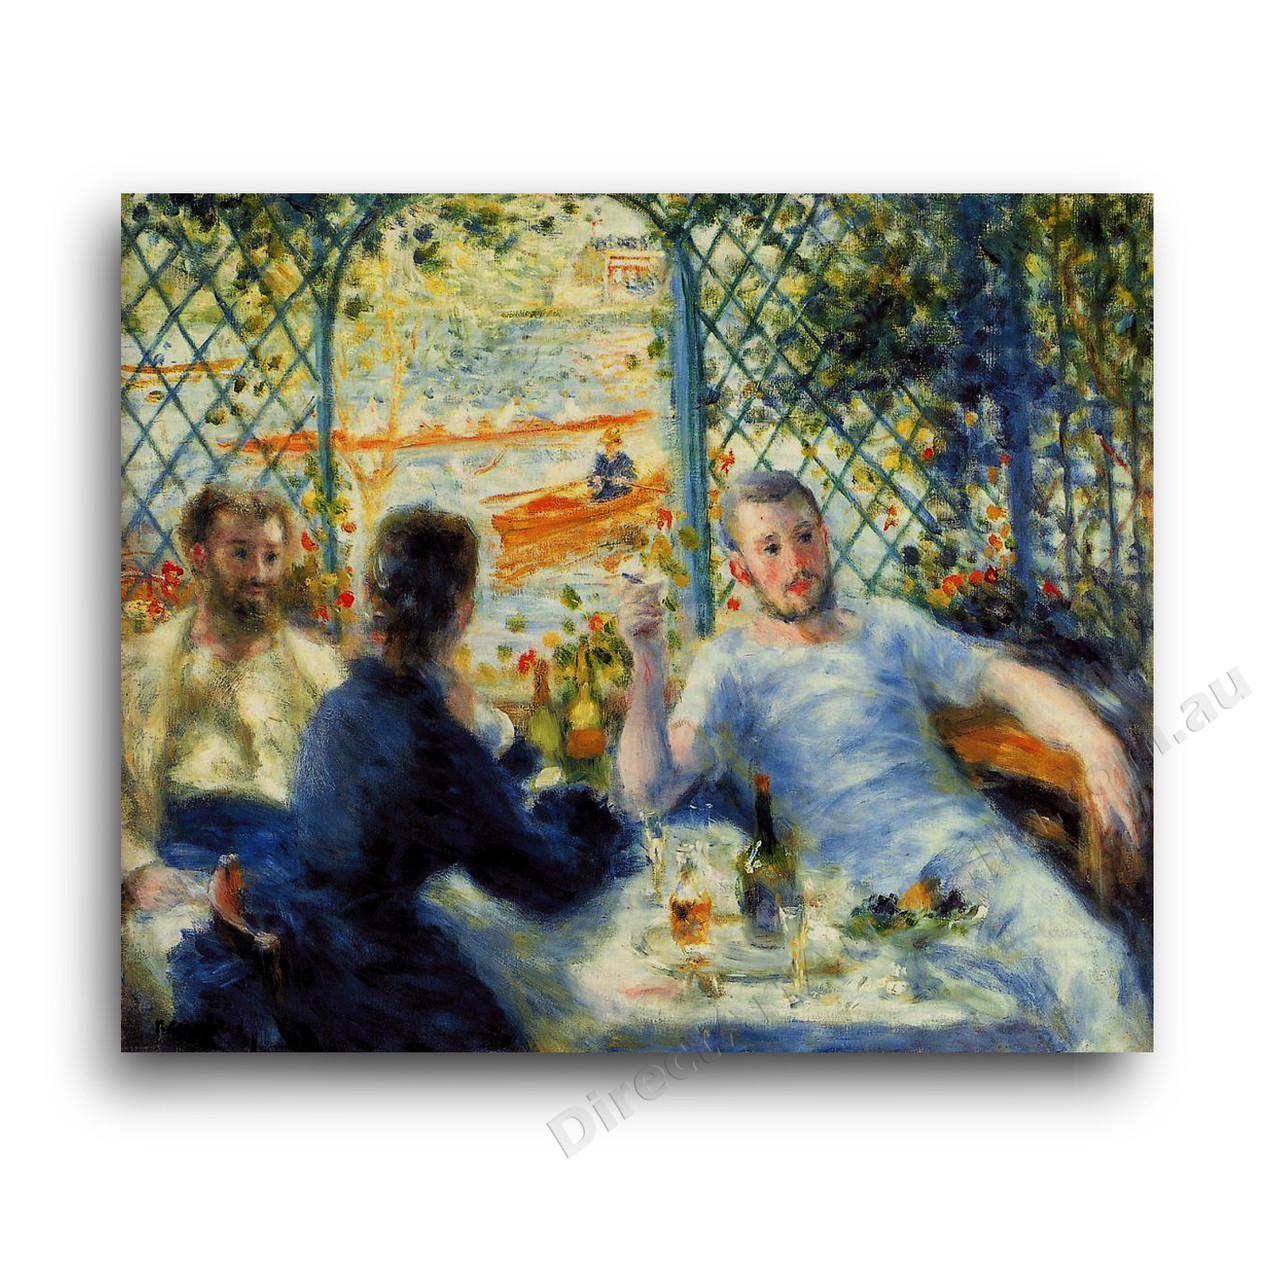 renoir luncheon of the boating party Luncheon of the boating party by renoir (1880-81): interpretation of impressionist genre painting.